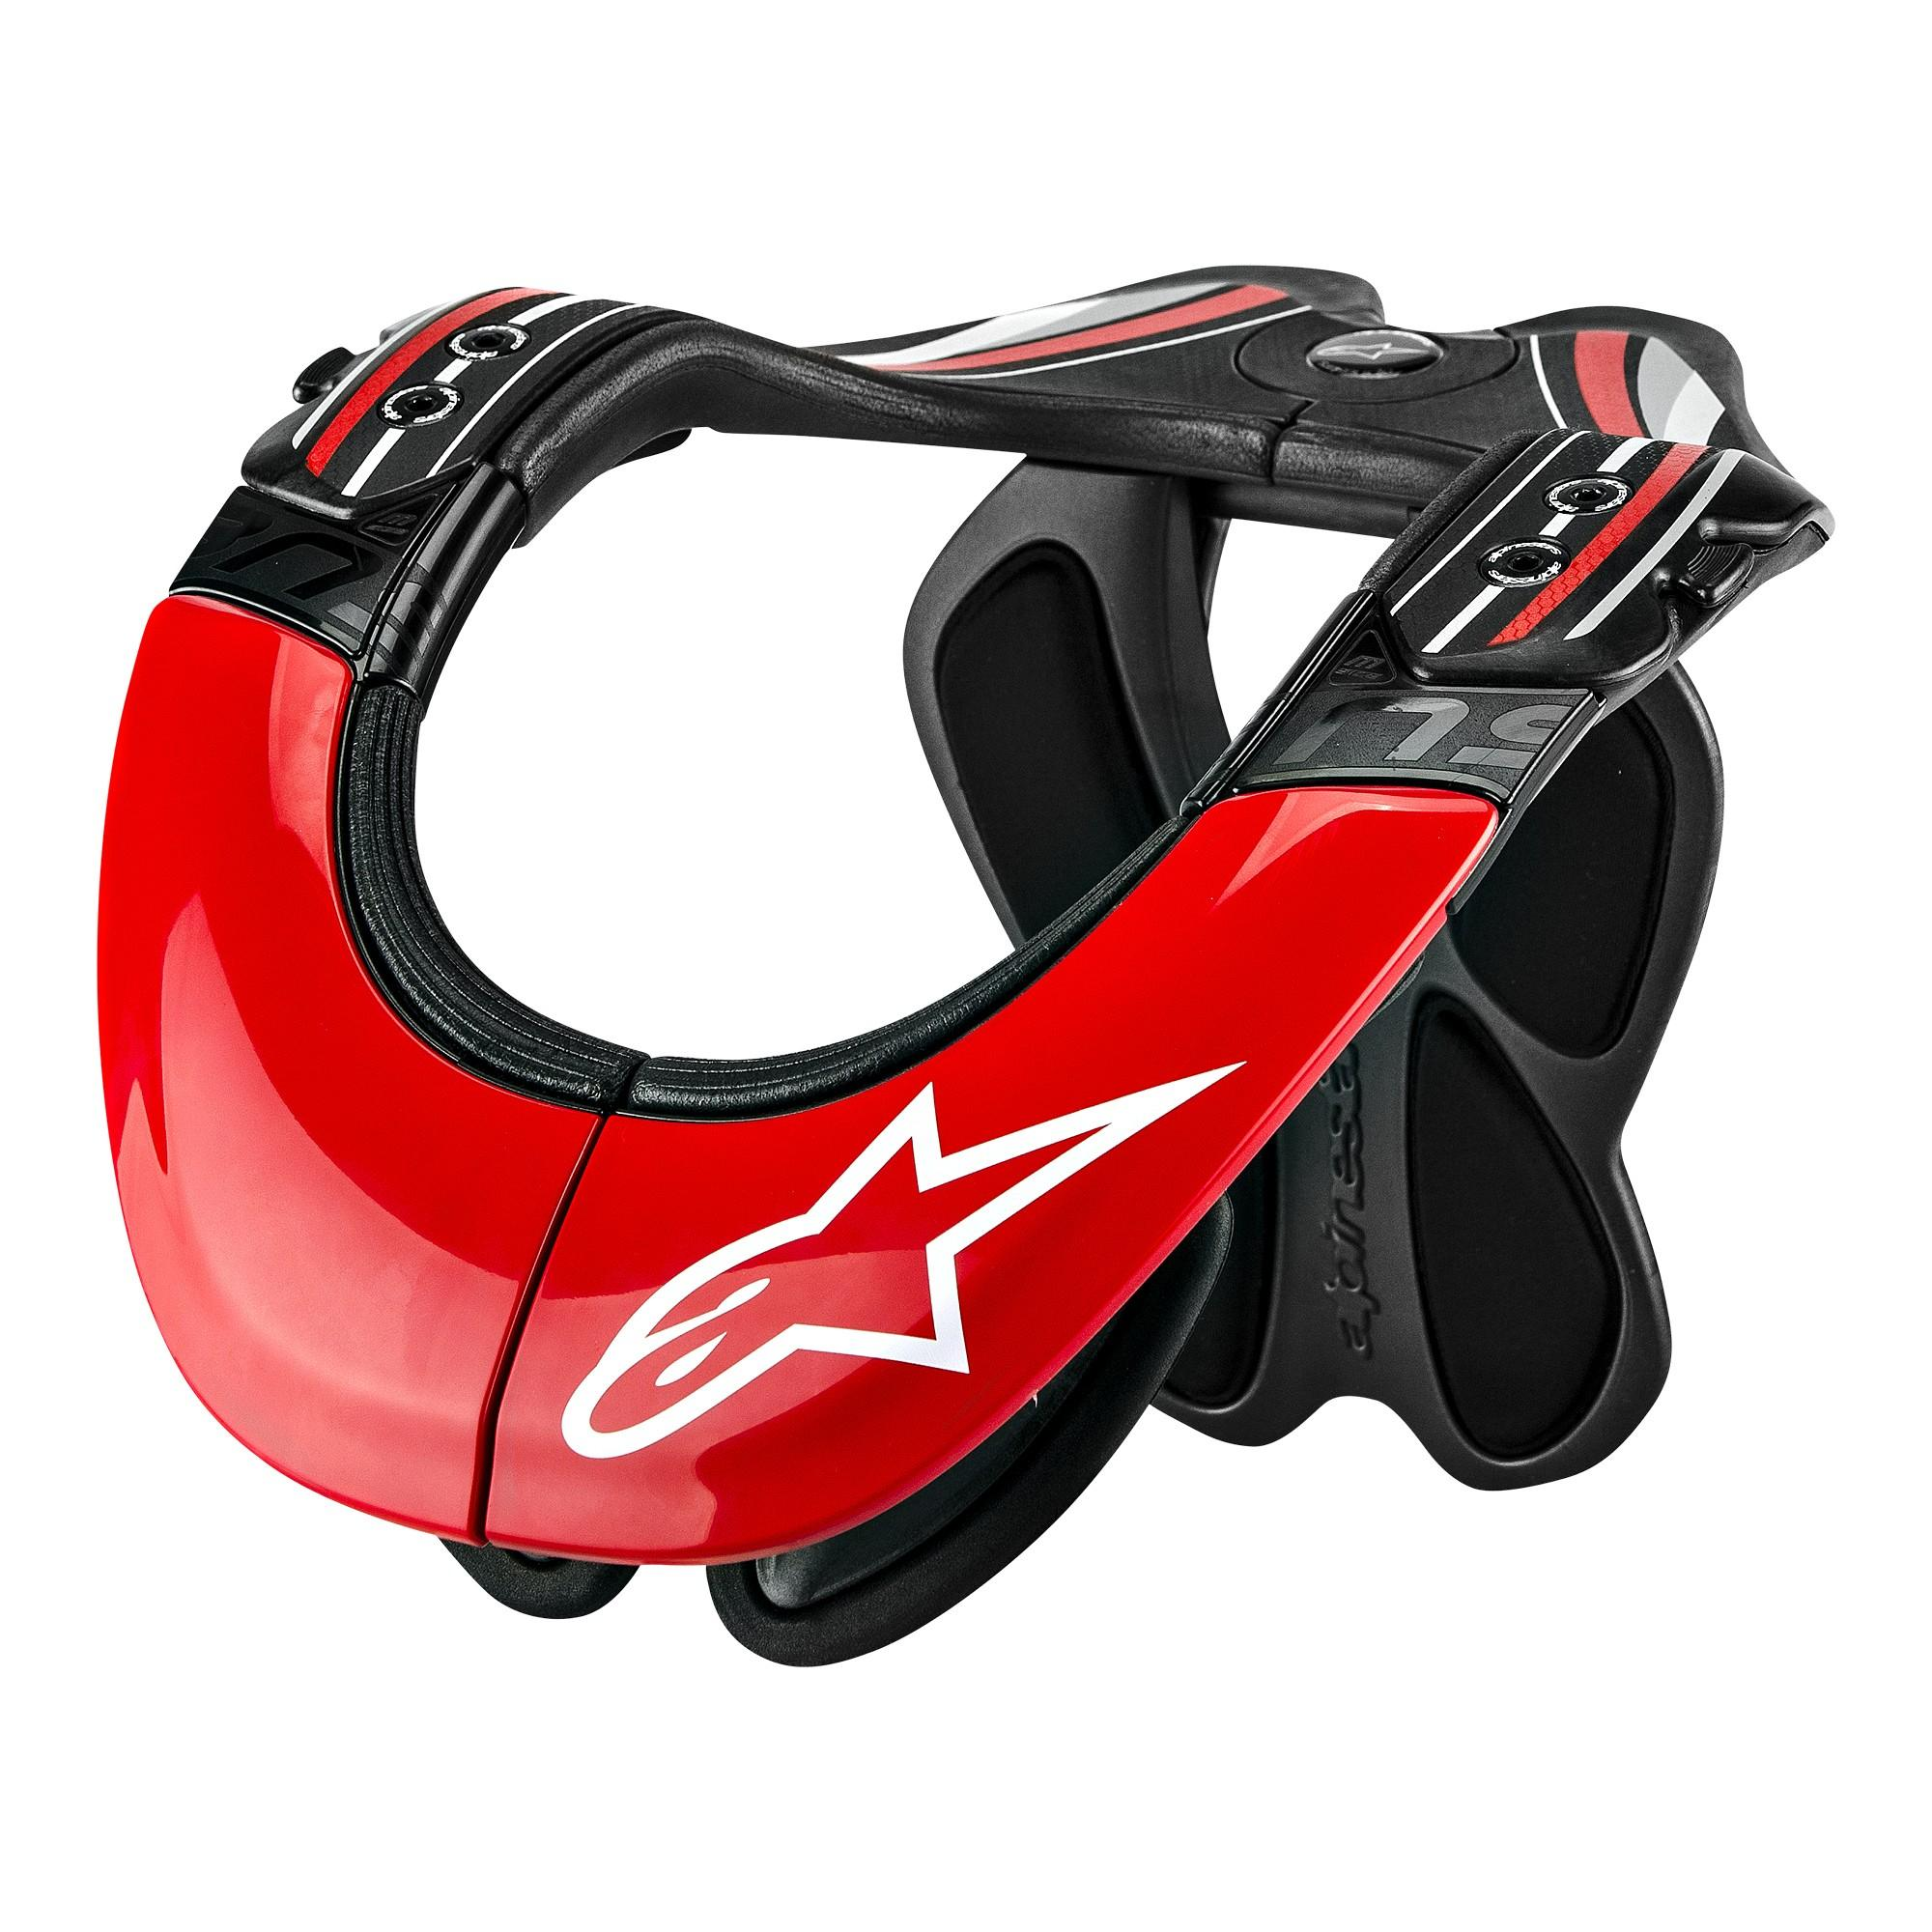 alpinestars tech carbon bns neck brace online motorcycle accessories australia scm. Black Bedroom Furniture Sets. Home Design Ideas